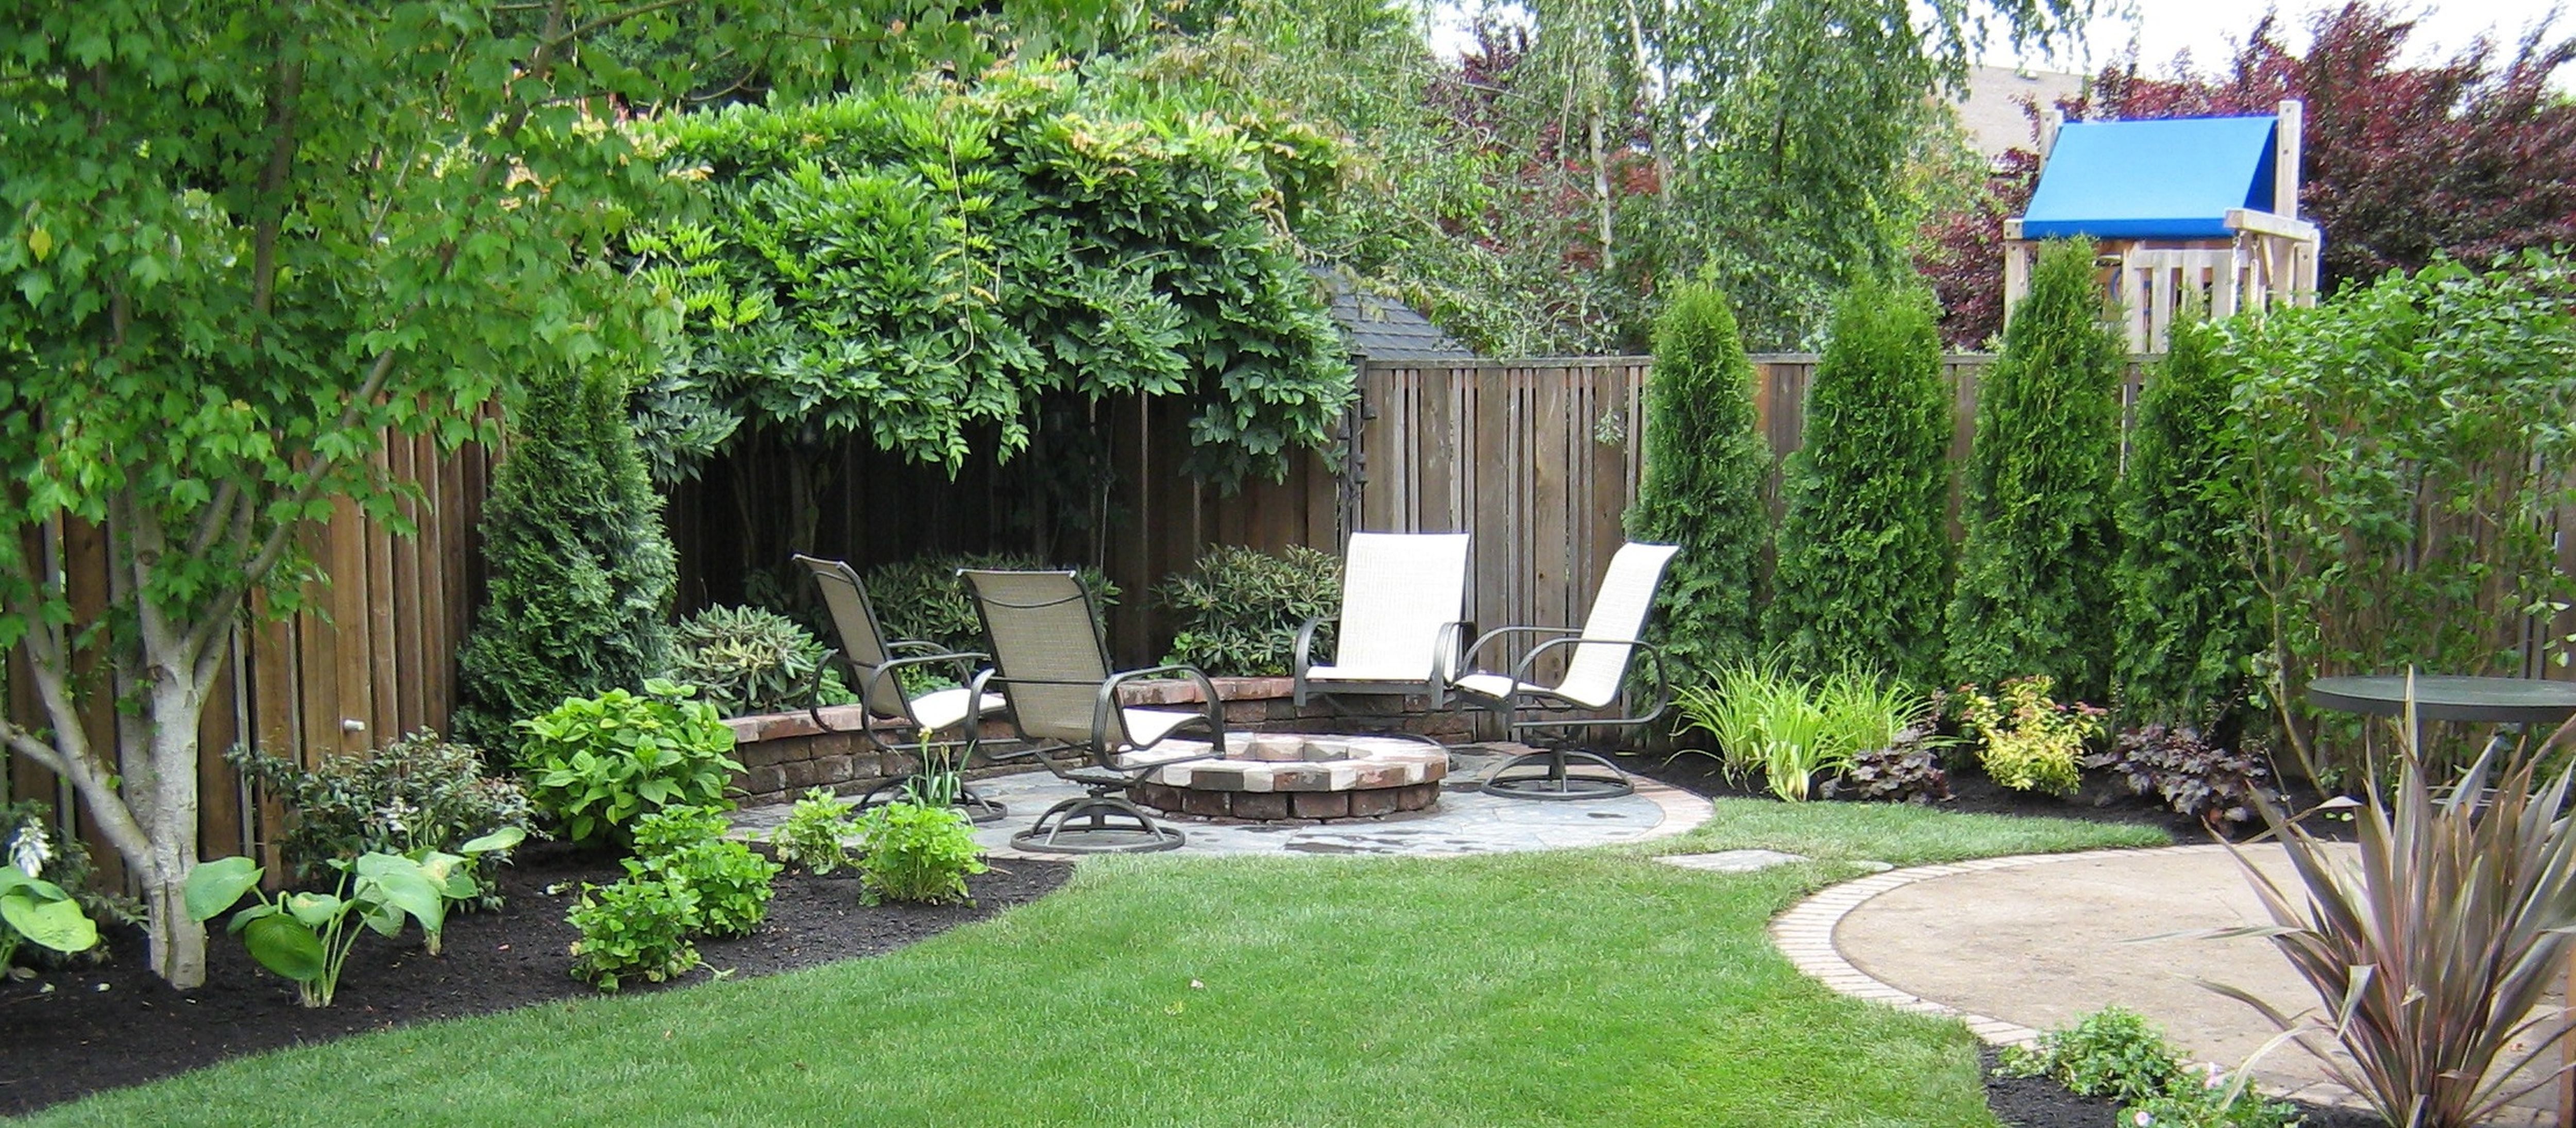 Simple Landscaping Ideas For A Small Space